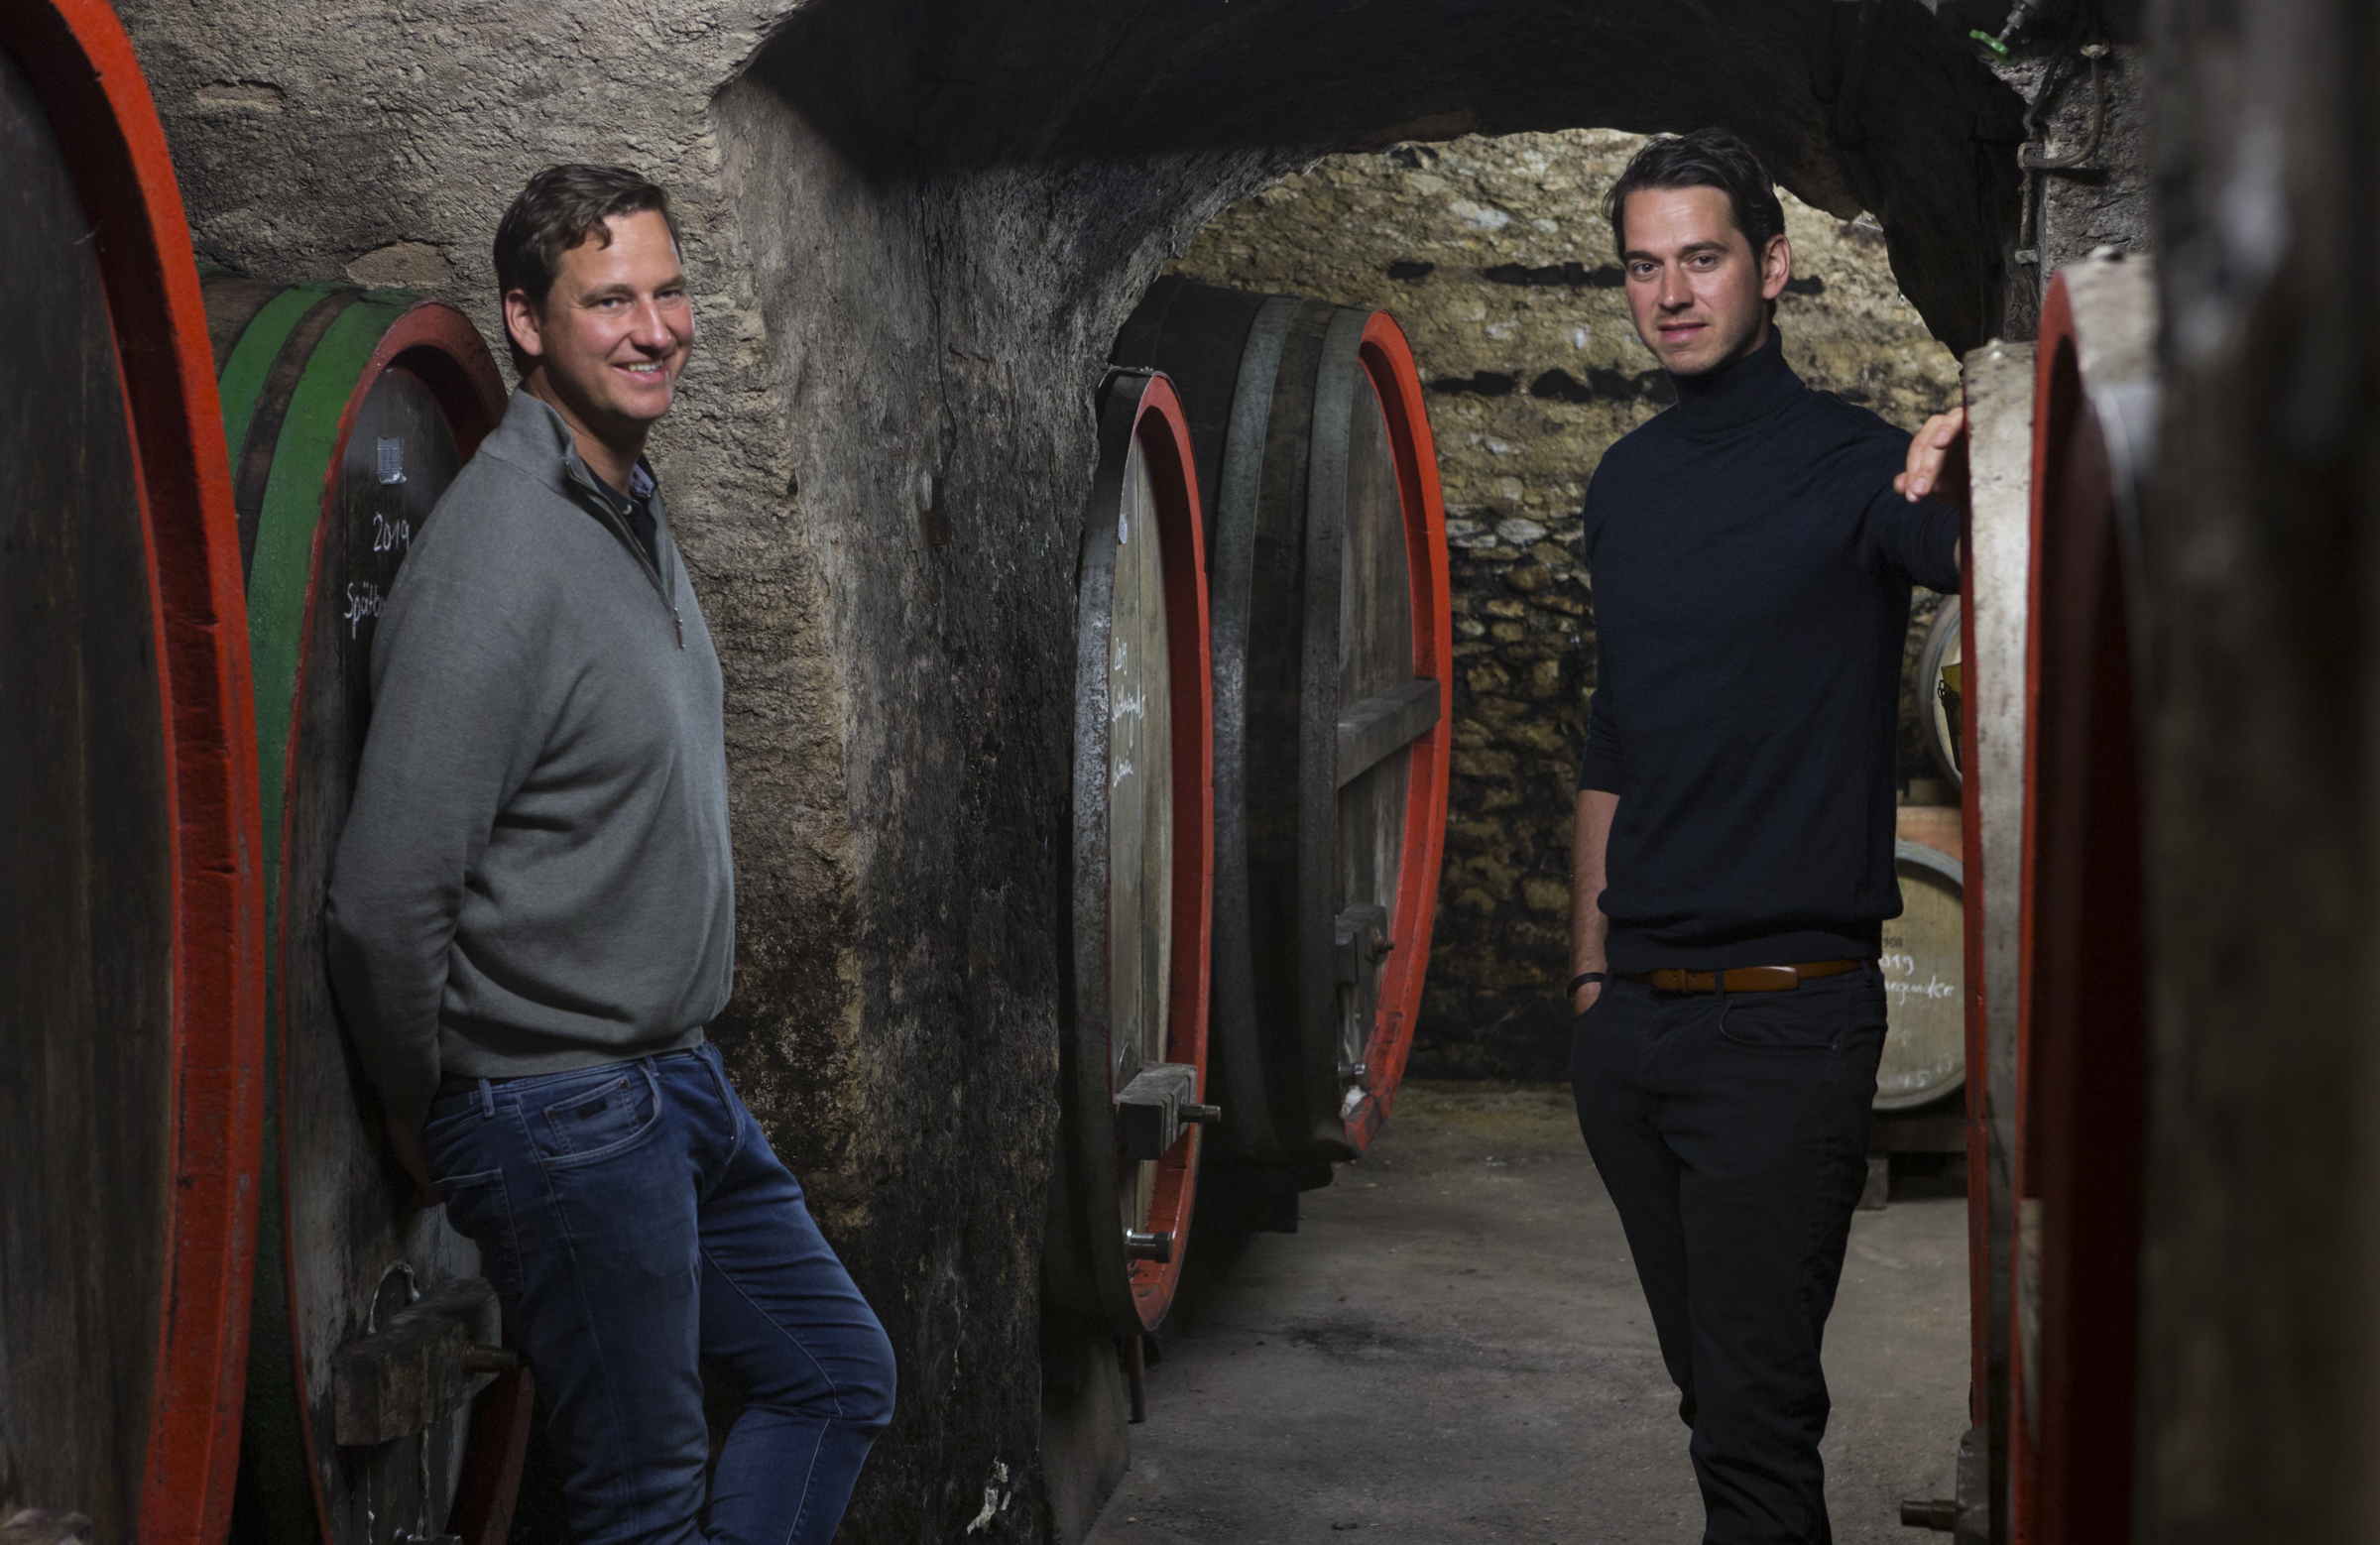 Johannes and Christoph Thörle in the Cave of their family winery. Andreas Durst